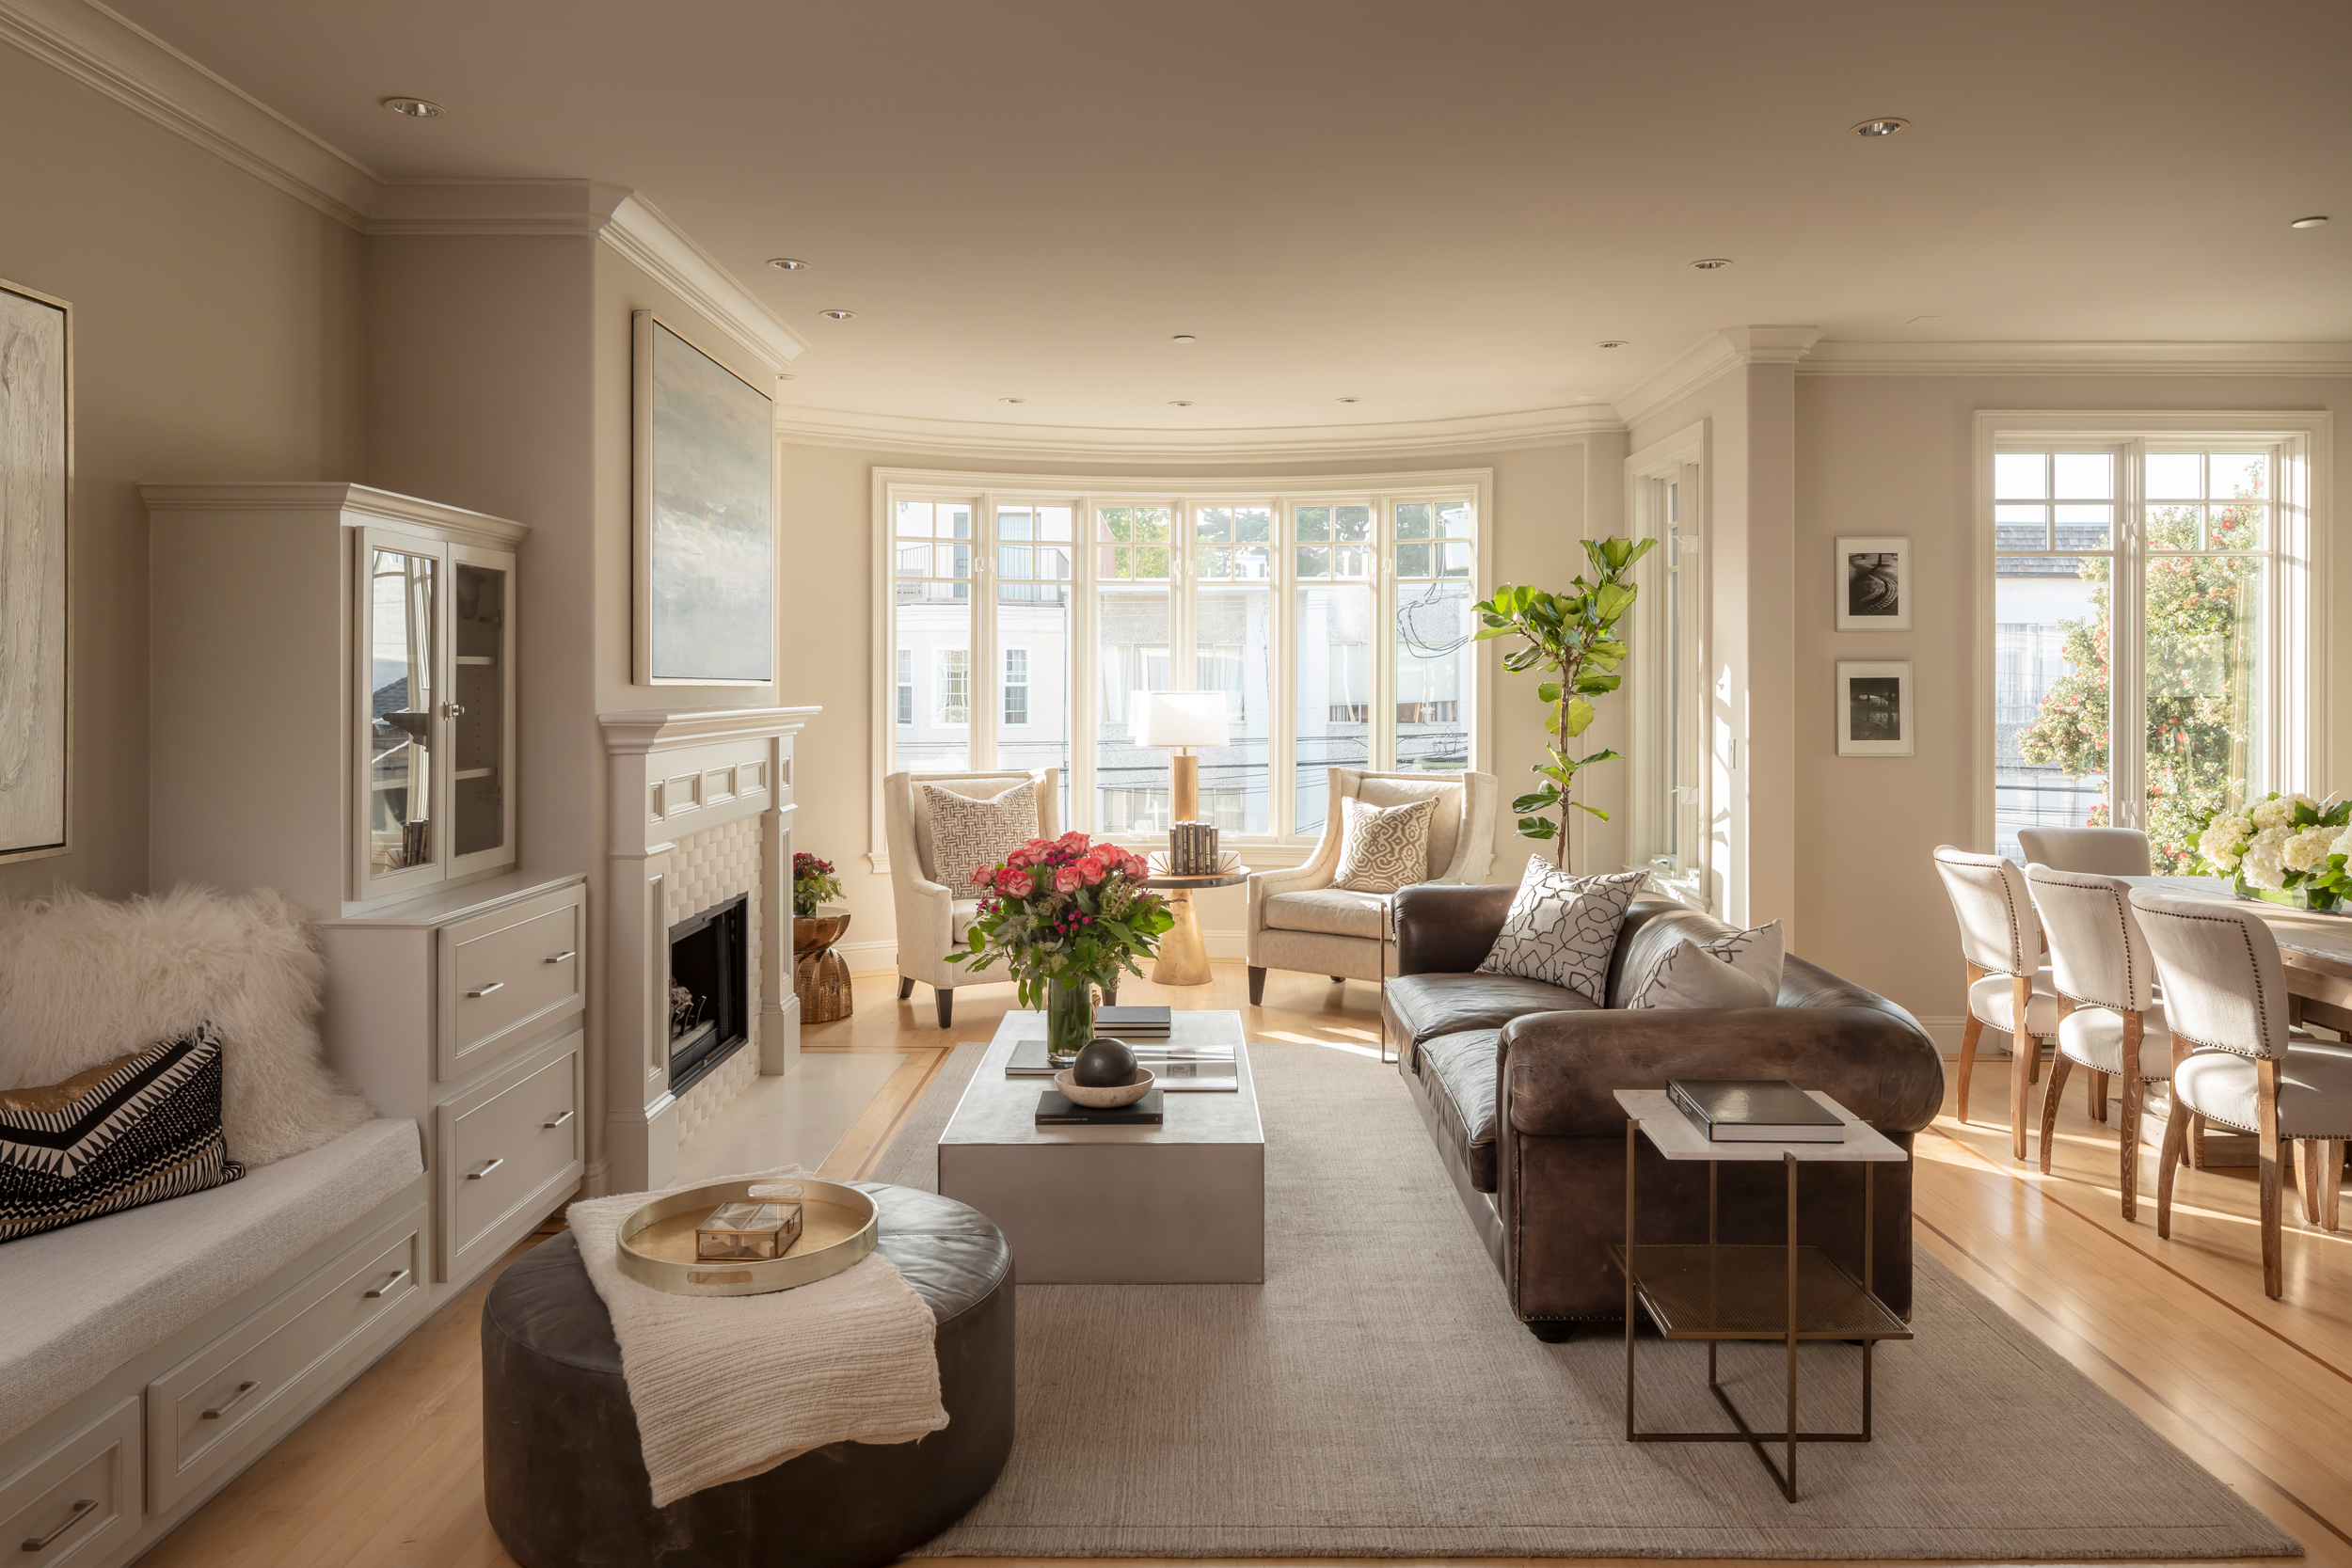 156 12th Ave. $2.3M